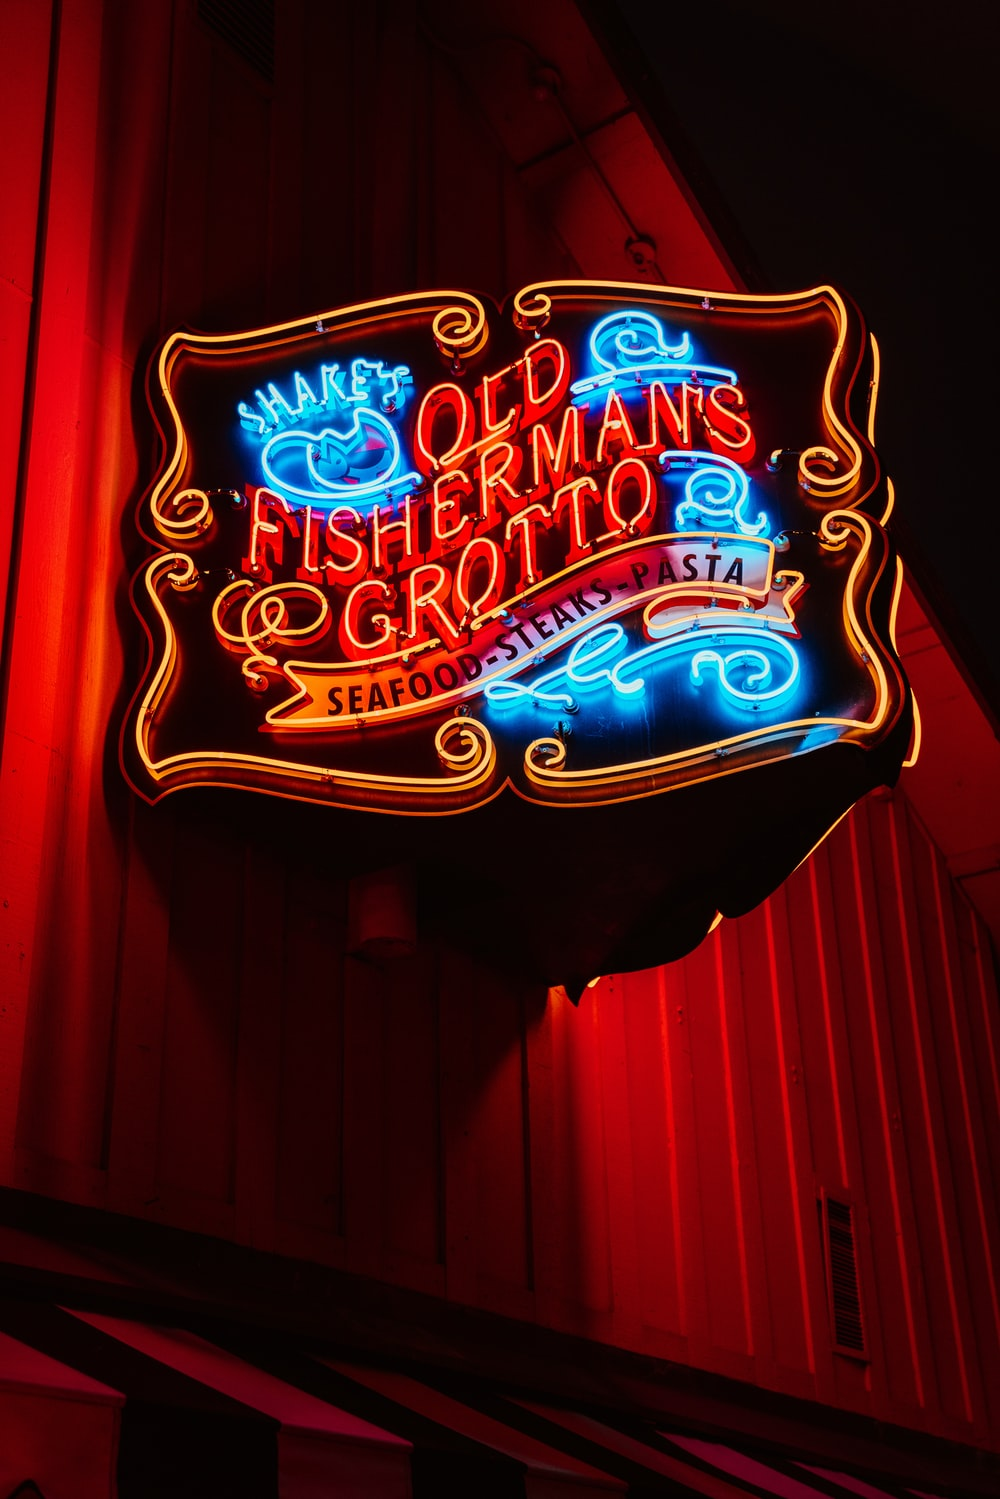 old fisherman's grotto neon sign